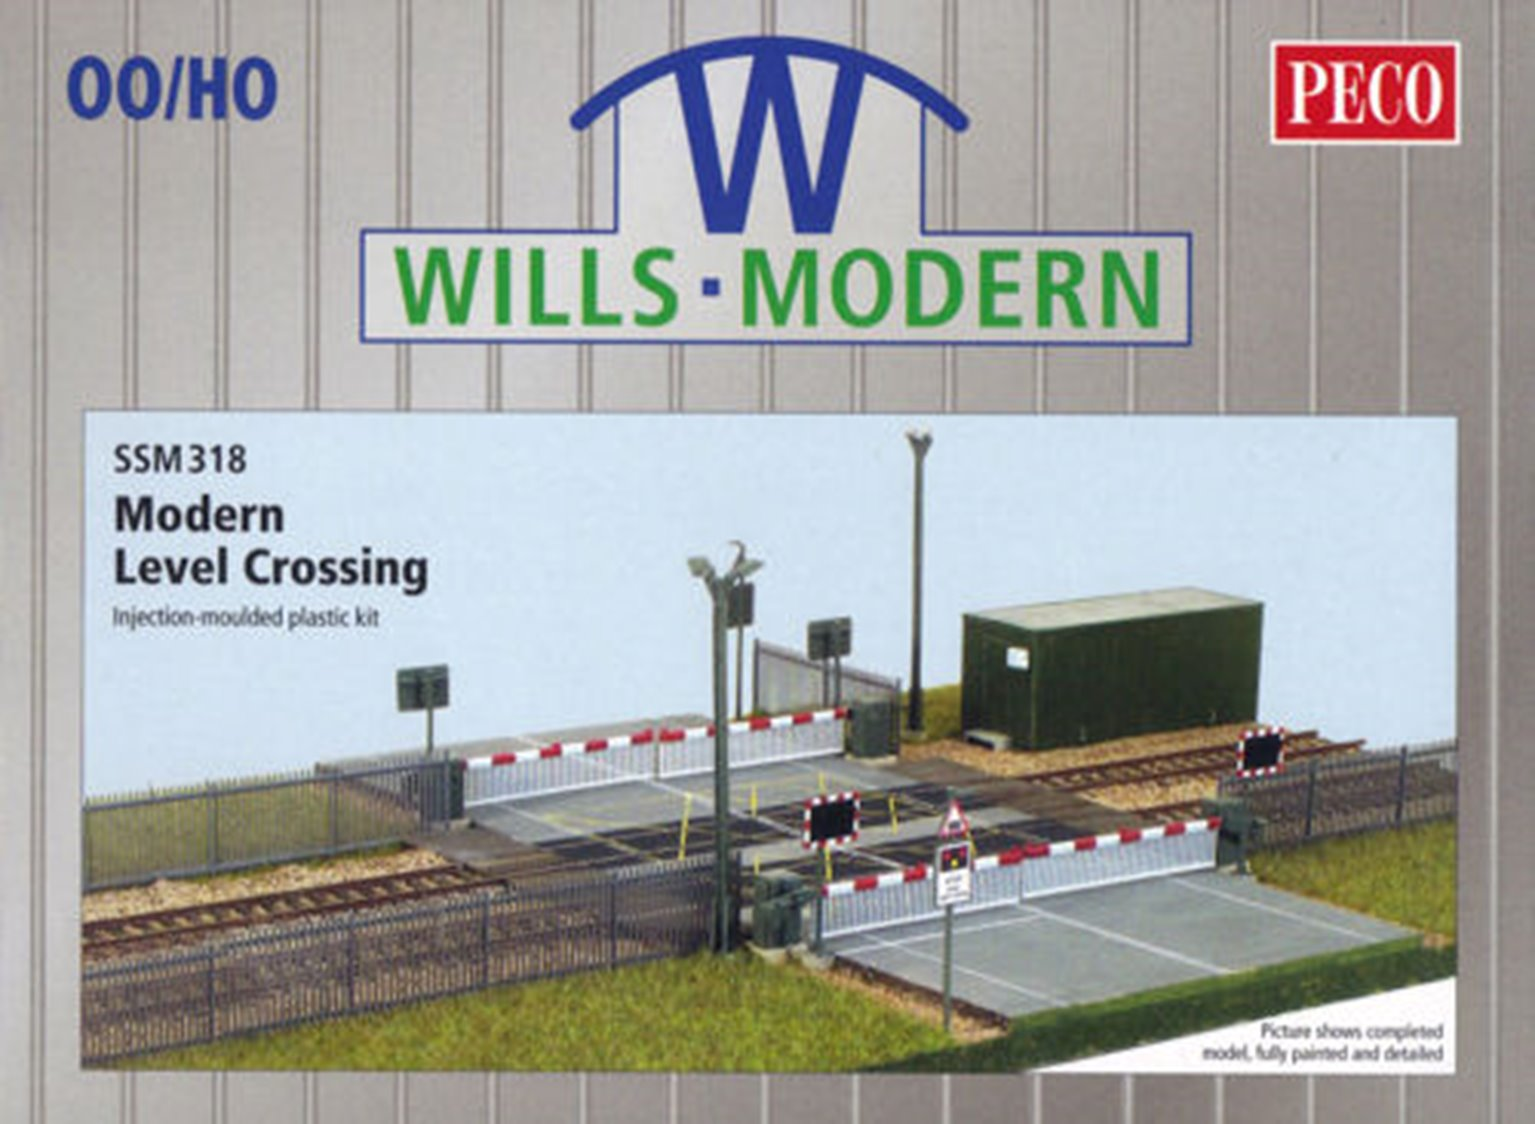 Modern Level Crossing kit with barriers